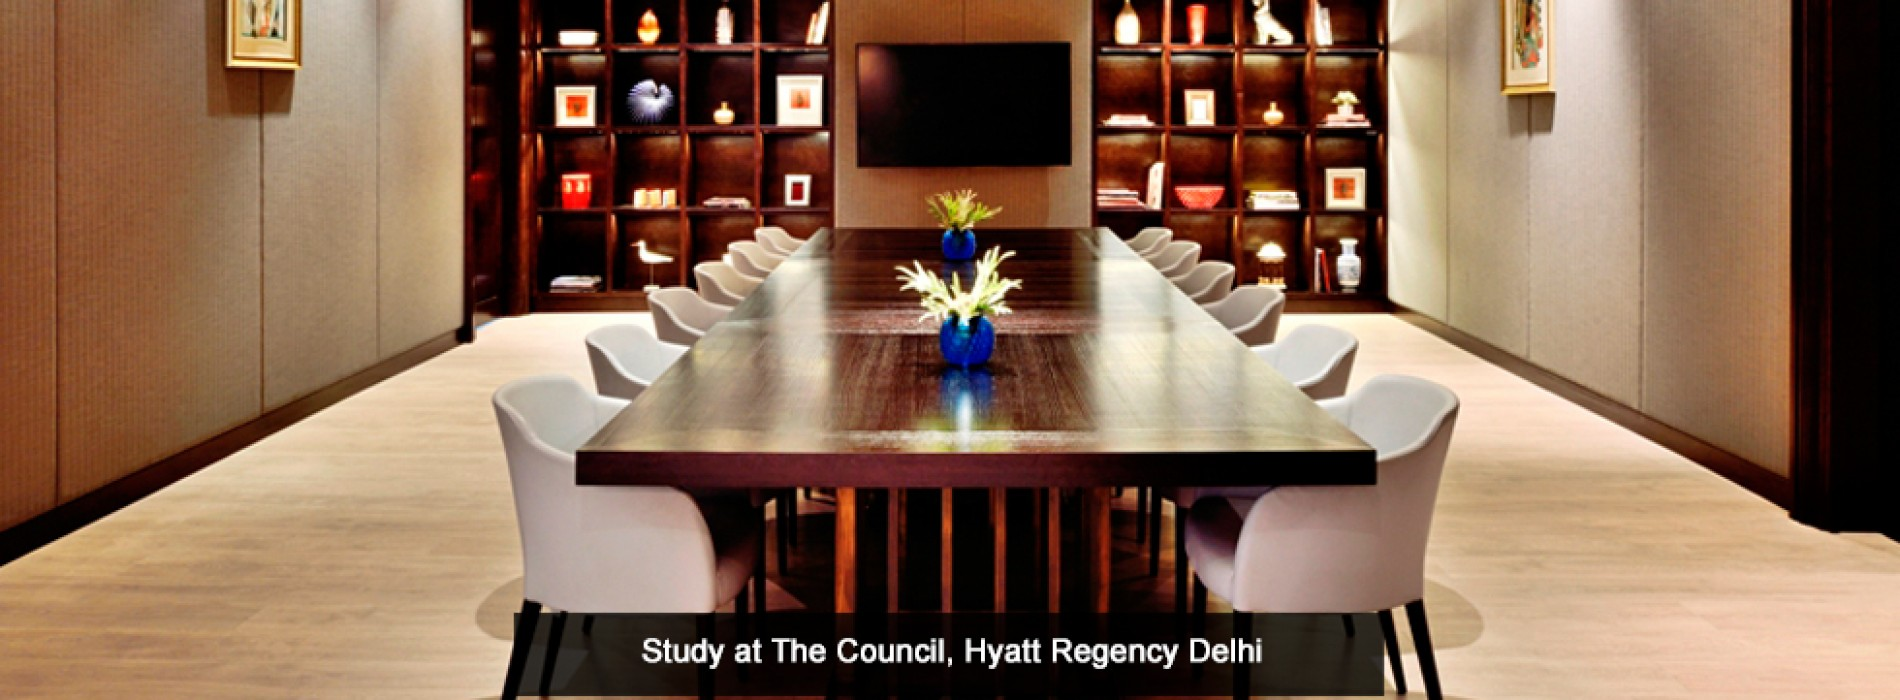 Hyatt Regency Delhi launches an exclusive business club – The Council